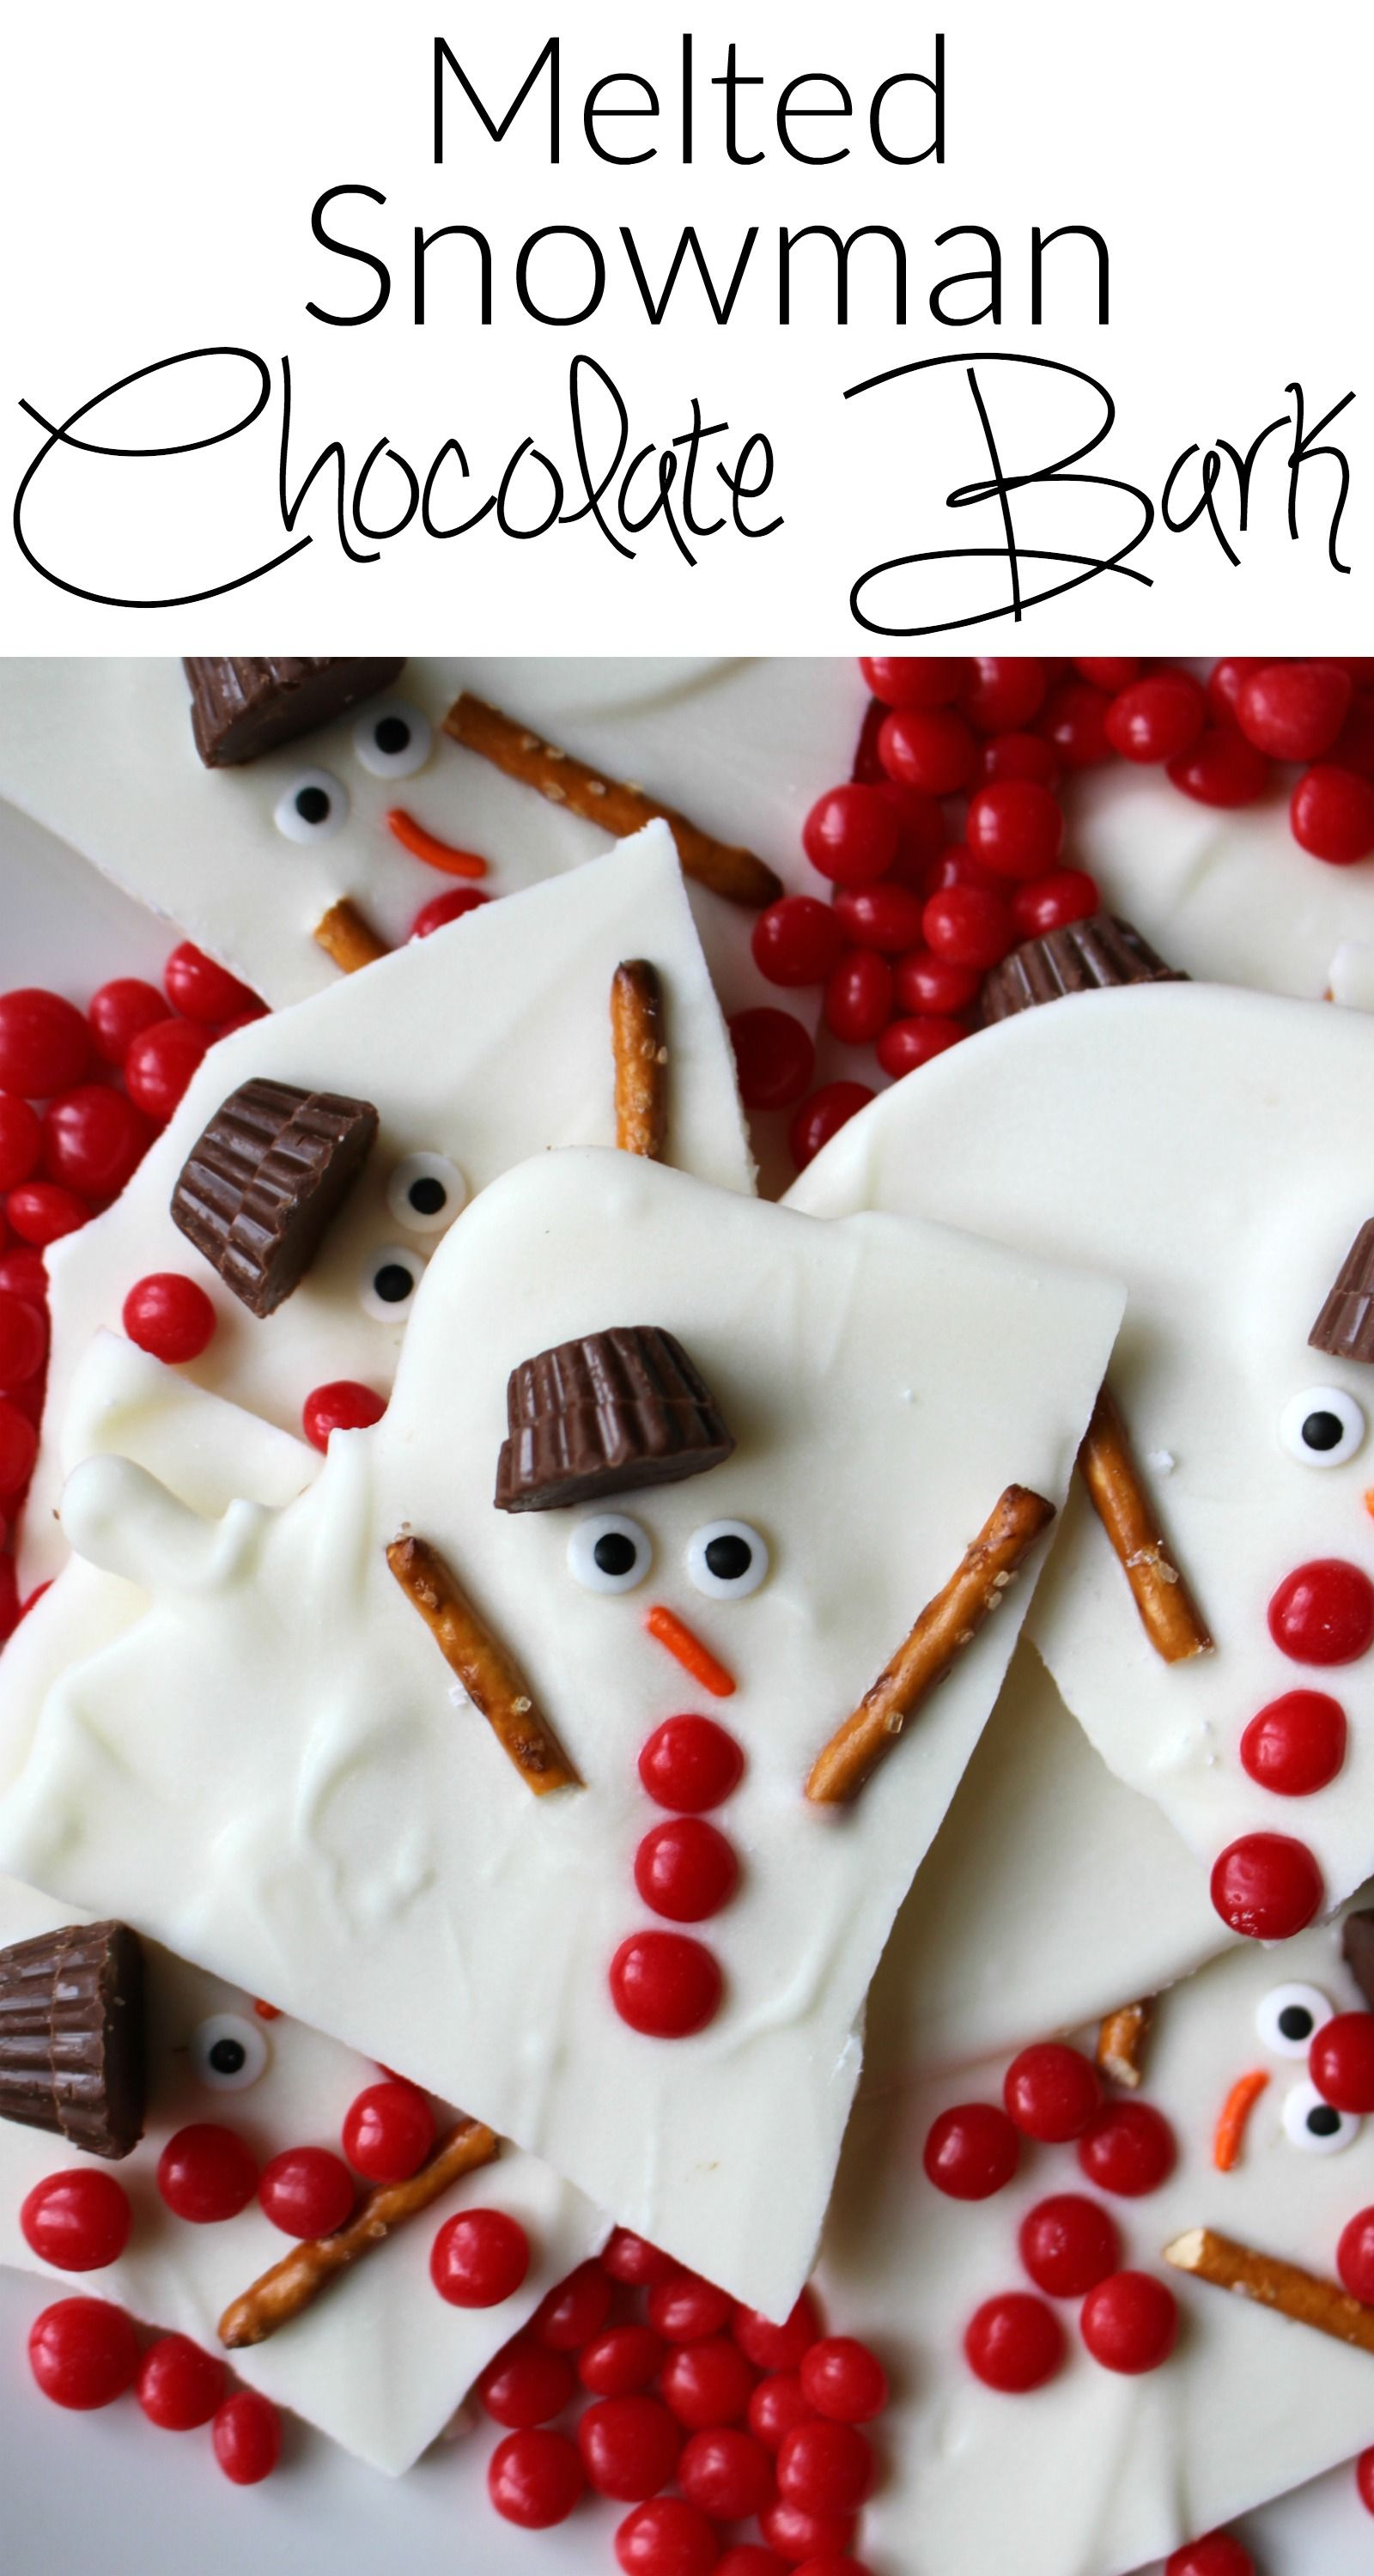 Melted Snowman Chocolate Bark A Super Easy Holiday Dessert A